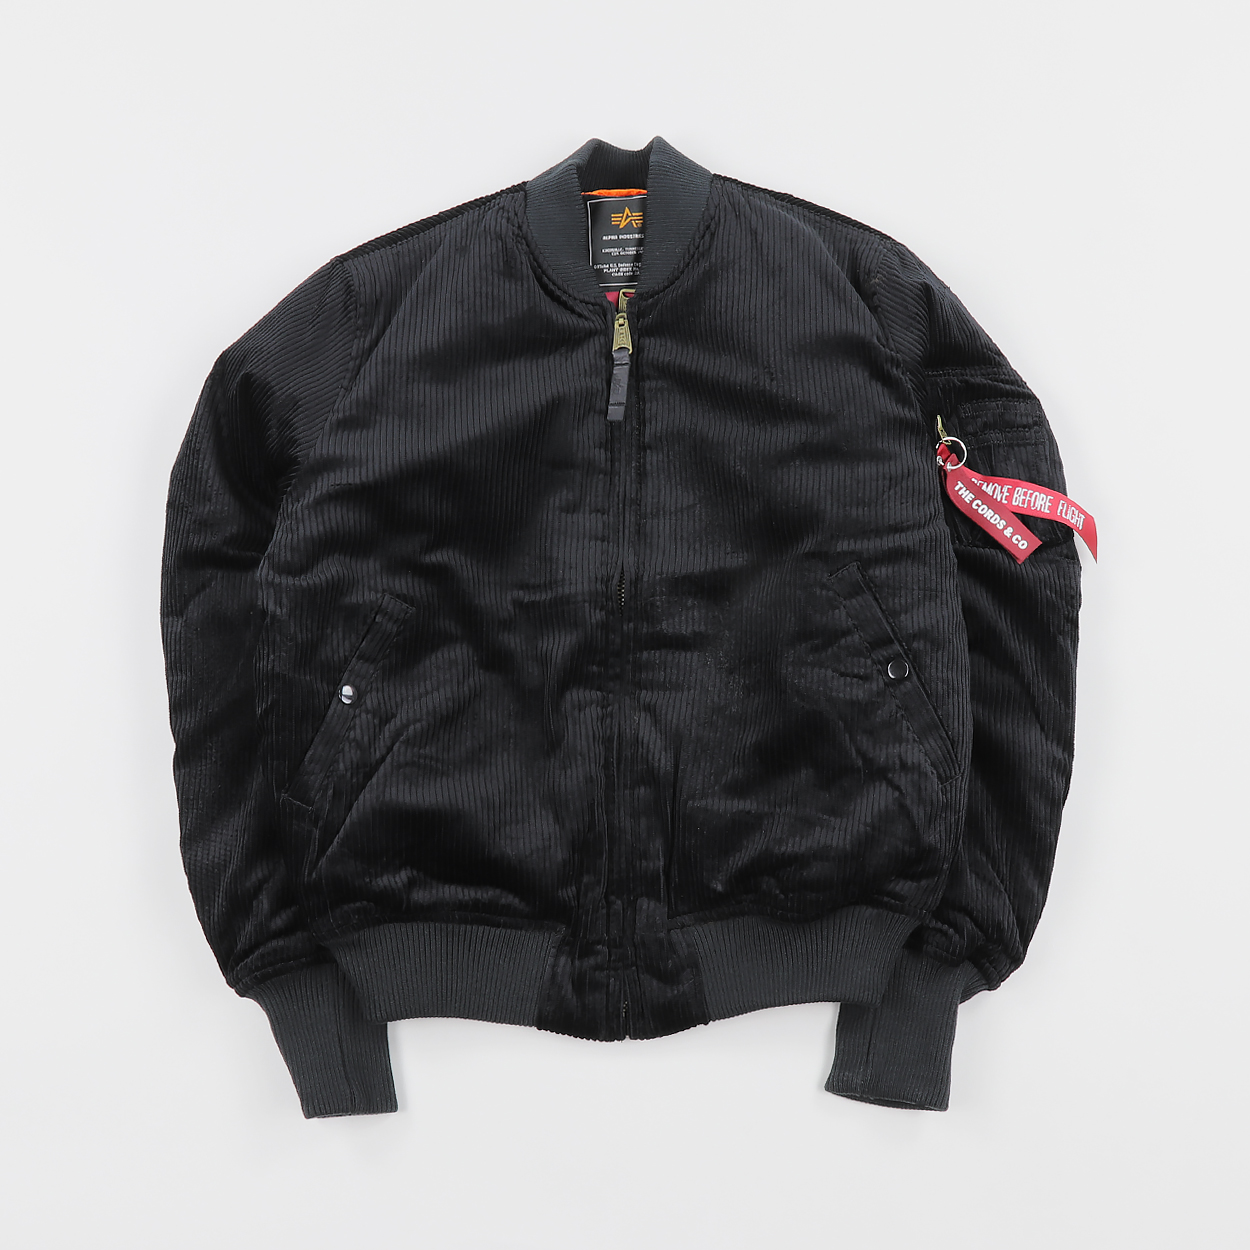 e54b532c0 The Cords and Co. x Alpha Industries MA-1 Bomber Jacket Black £121.00